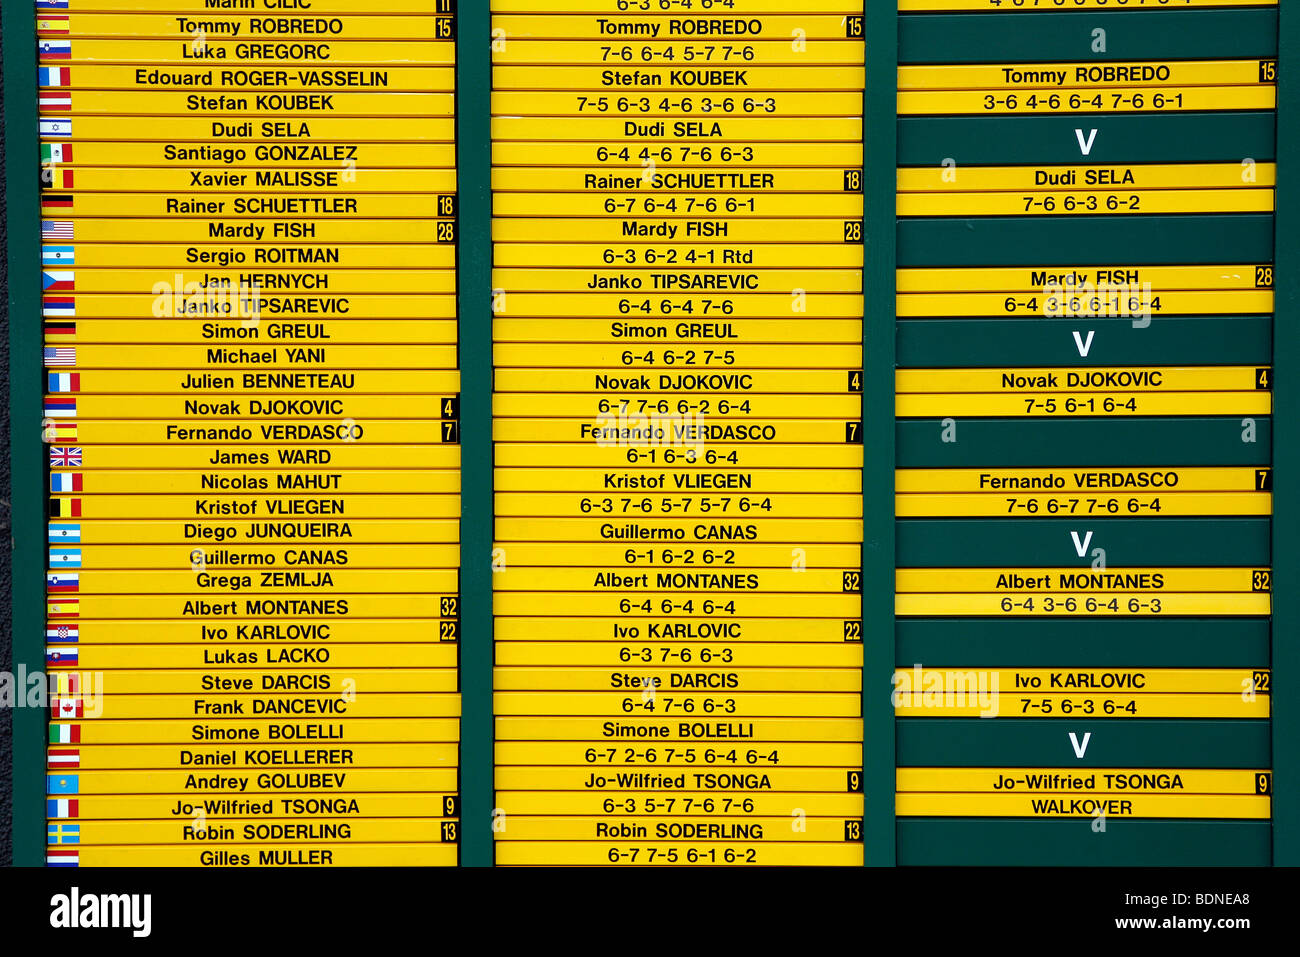 Men's singles draw board detail during the 2009 Wimbledon Tennis Championships - Stock Image